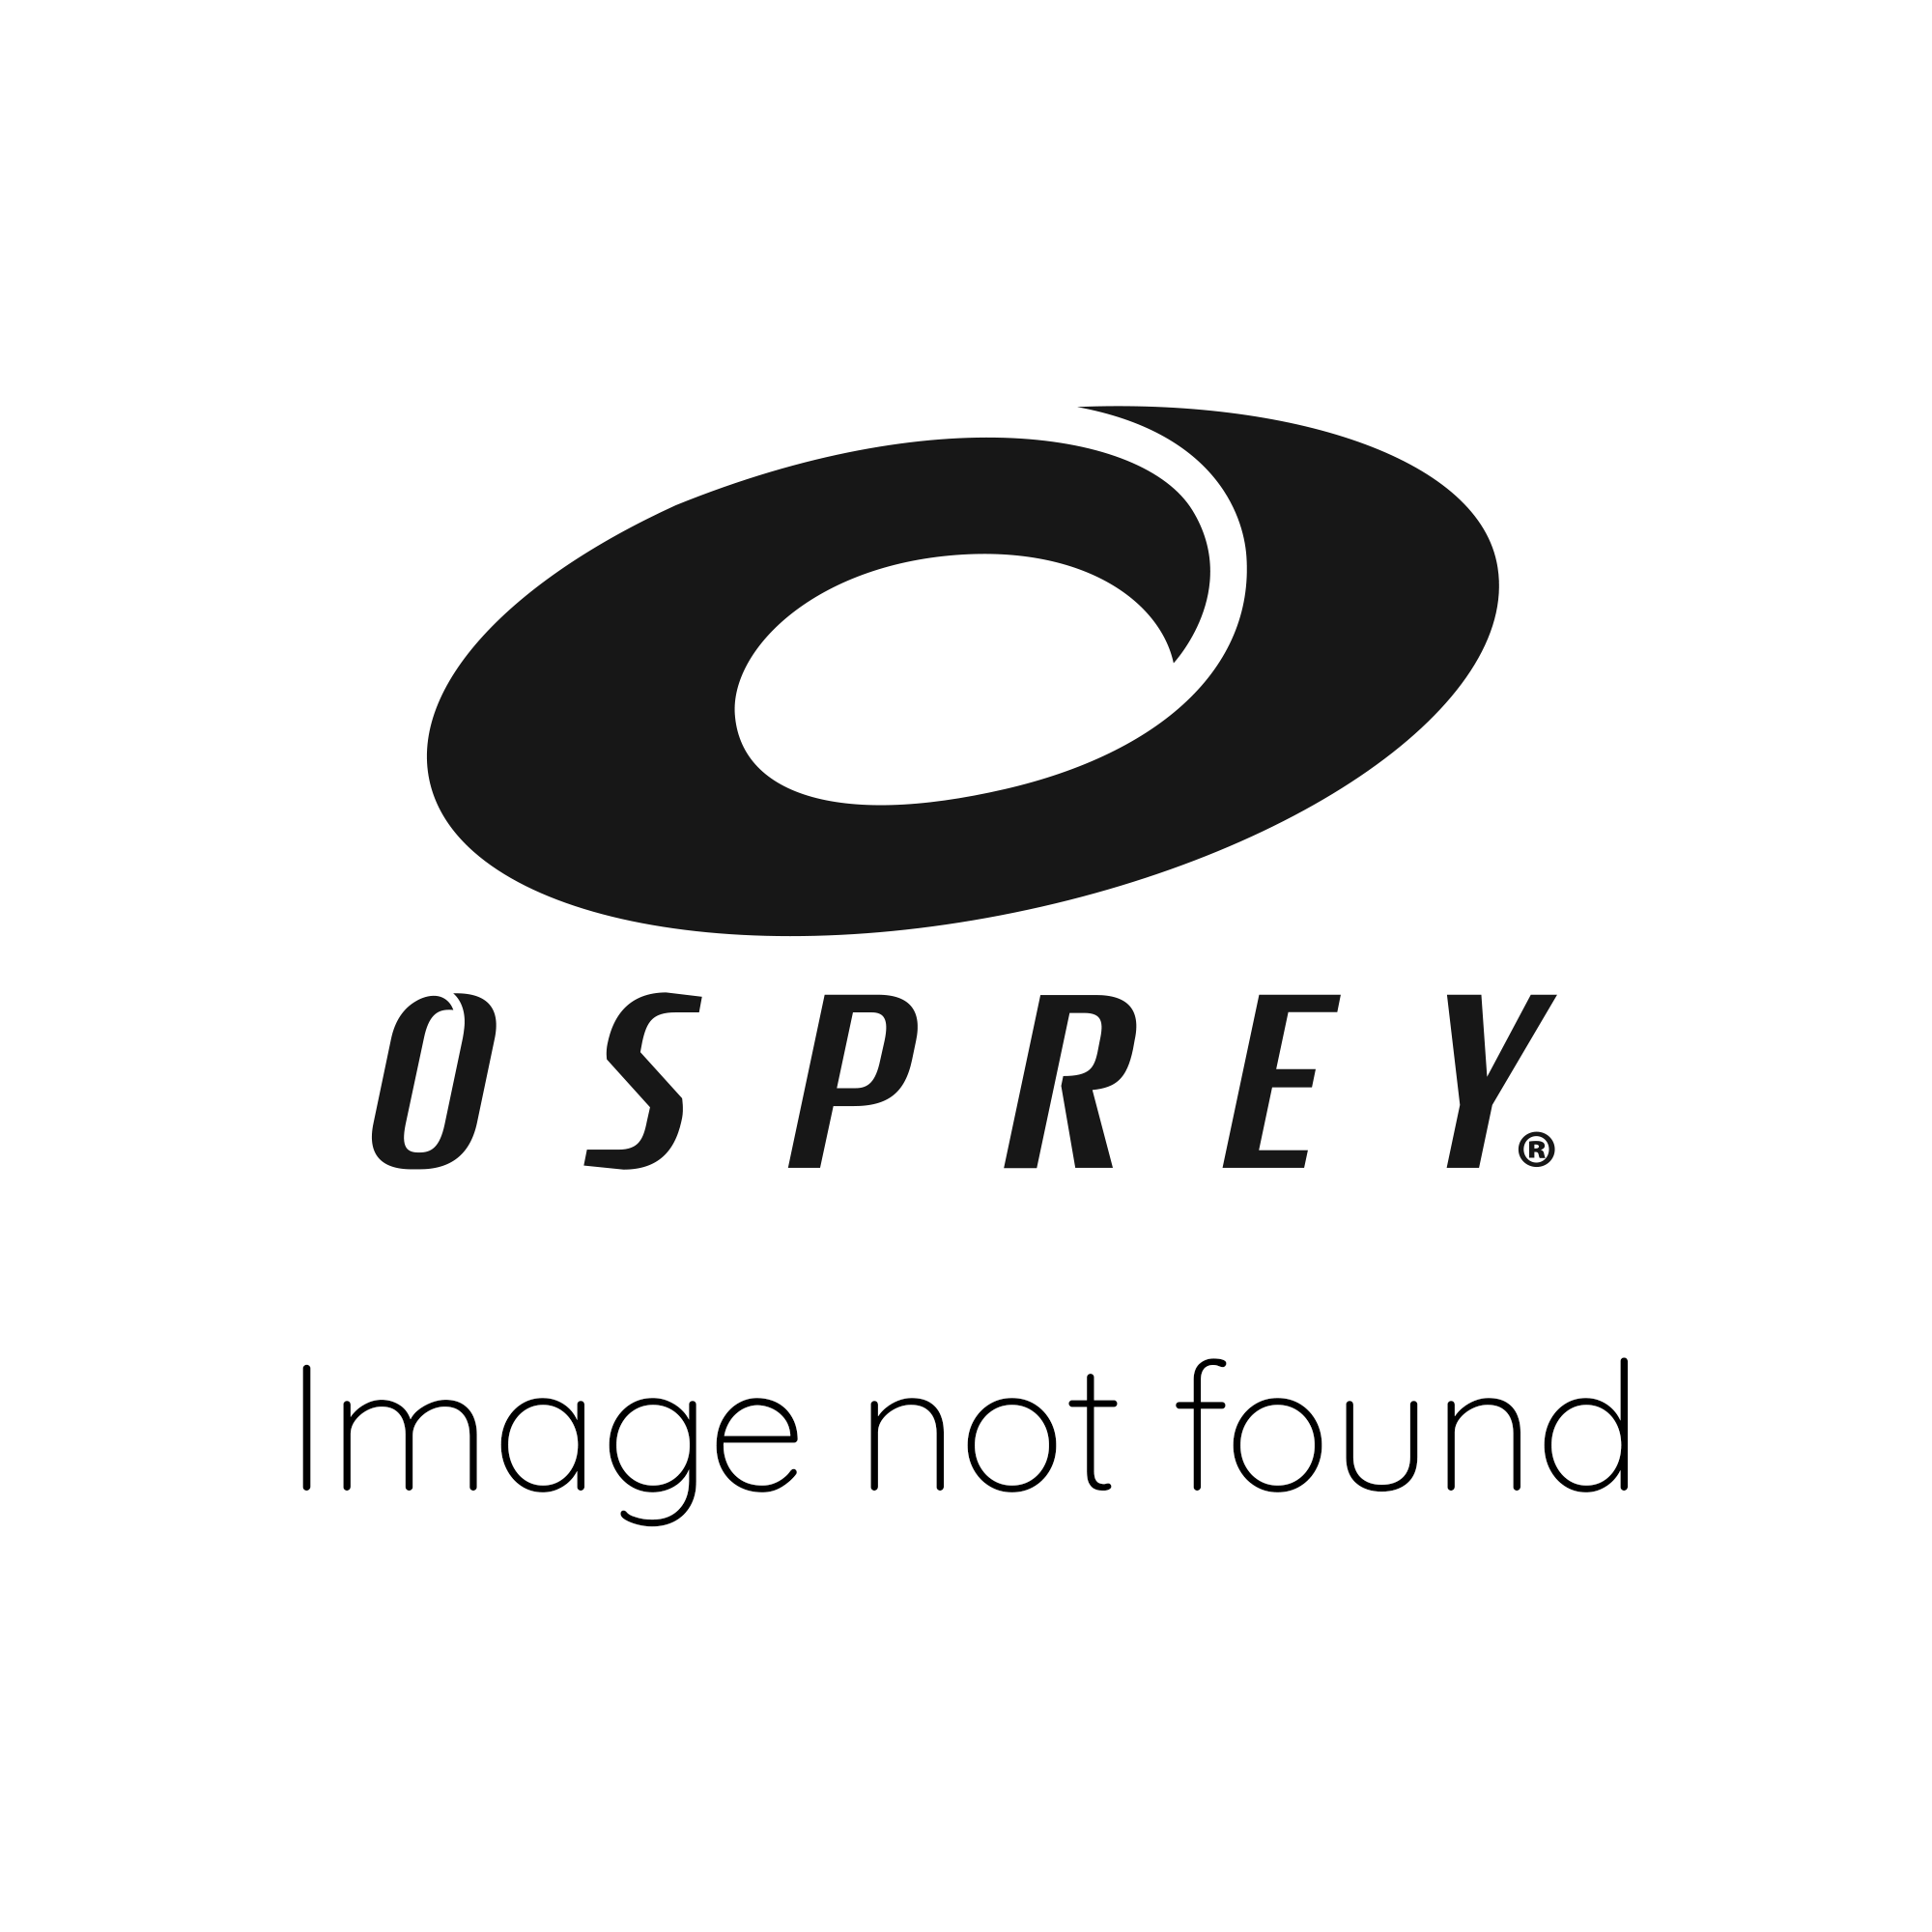 Osprey 6 39 tri band fish surfboard view all surfboards for Fish surfboards for sale